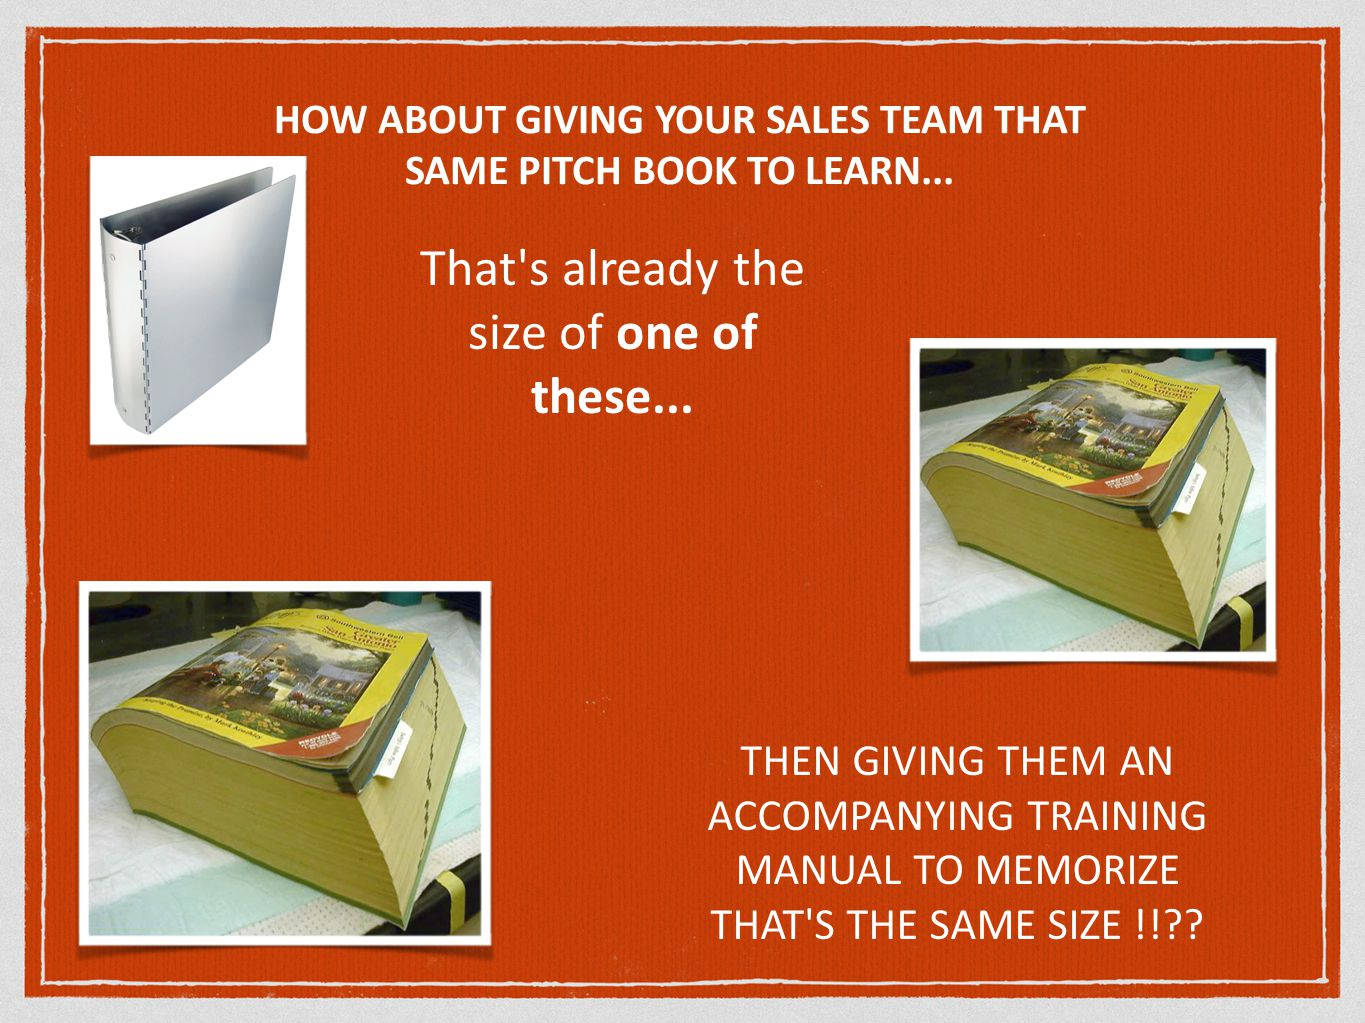 HOW ABOUT GIVING YOUR SALES TEAM THAT SAME PITCH BOOK TO LEARN...